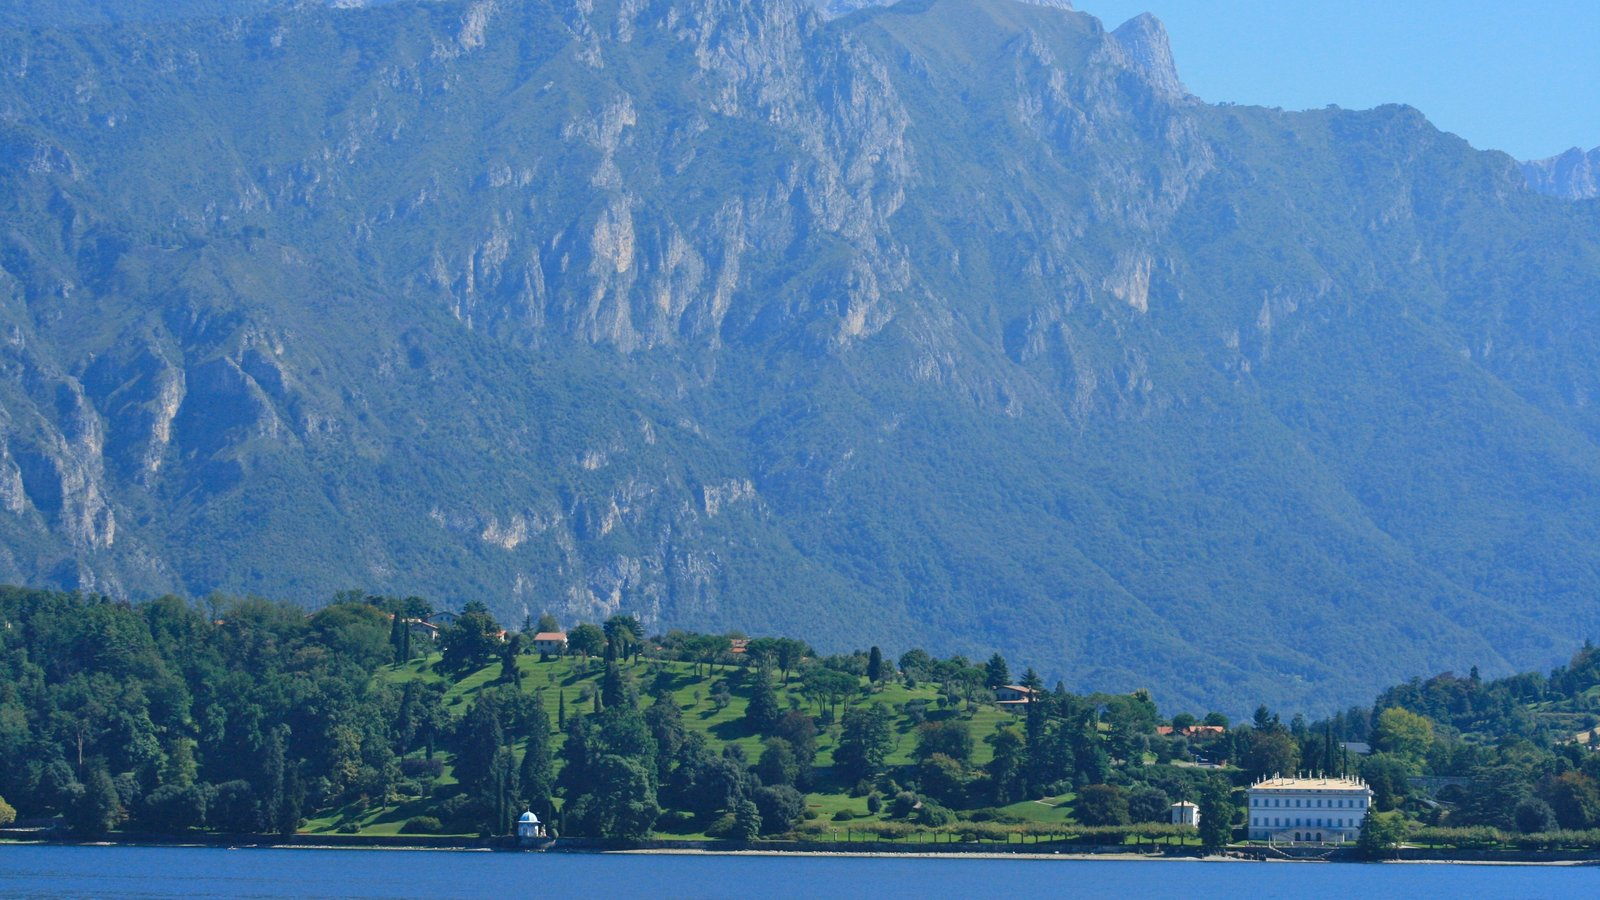 Como showing landscape views, mountains and a lake or waterhole